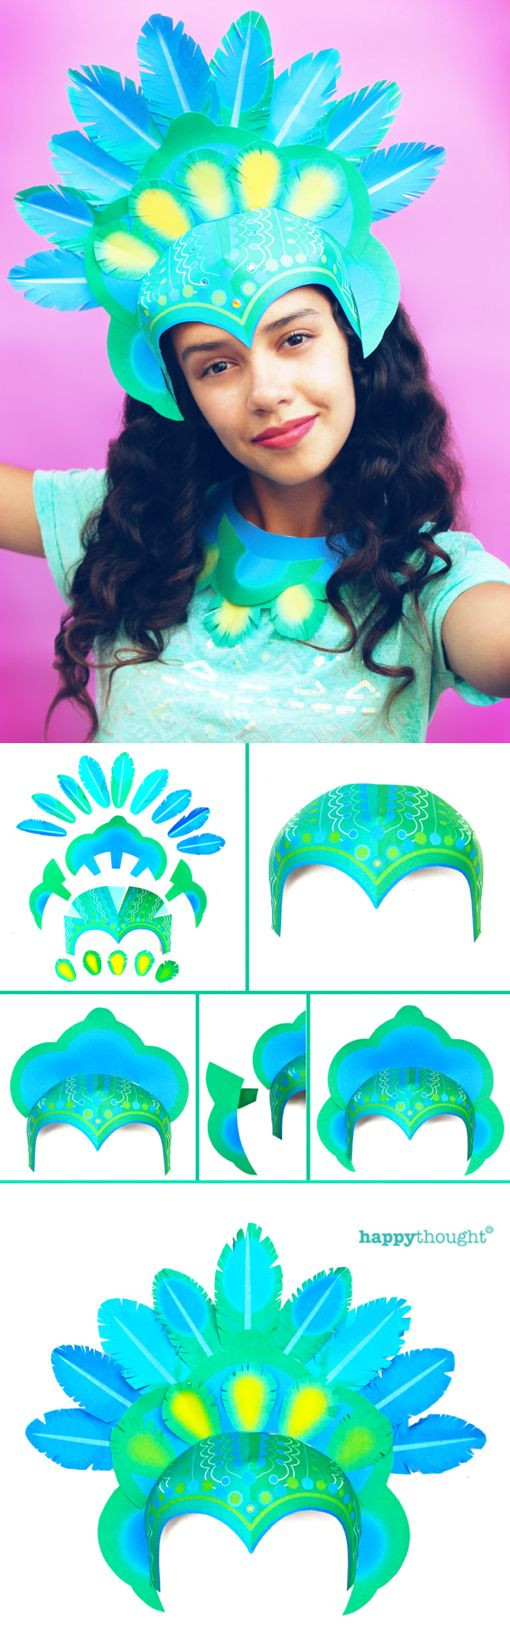 Best ideas about DIY Carnival Costume . Save or Pin Best 25 Carnival costumes ideas on Pinterest Now.